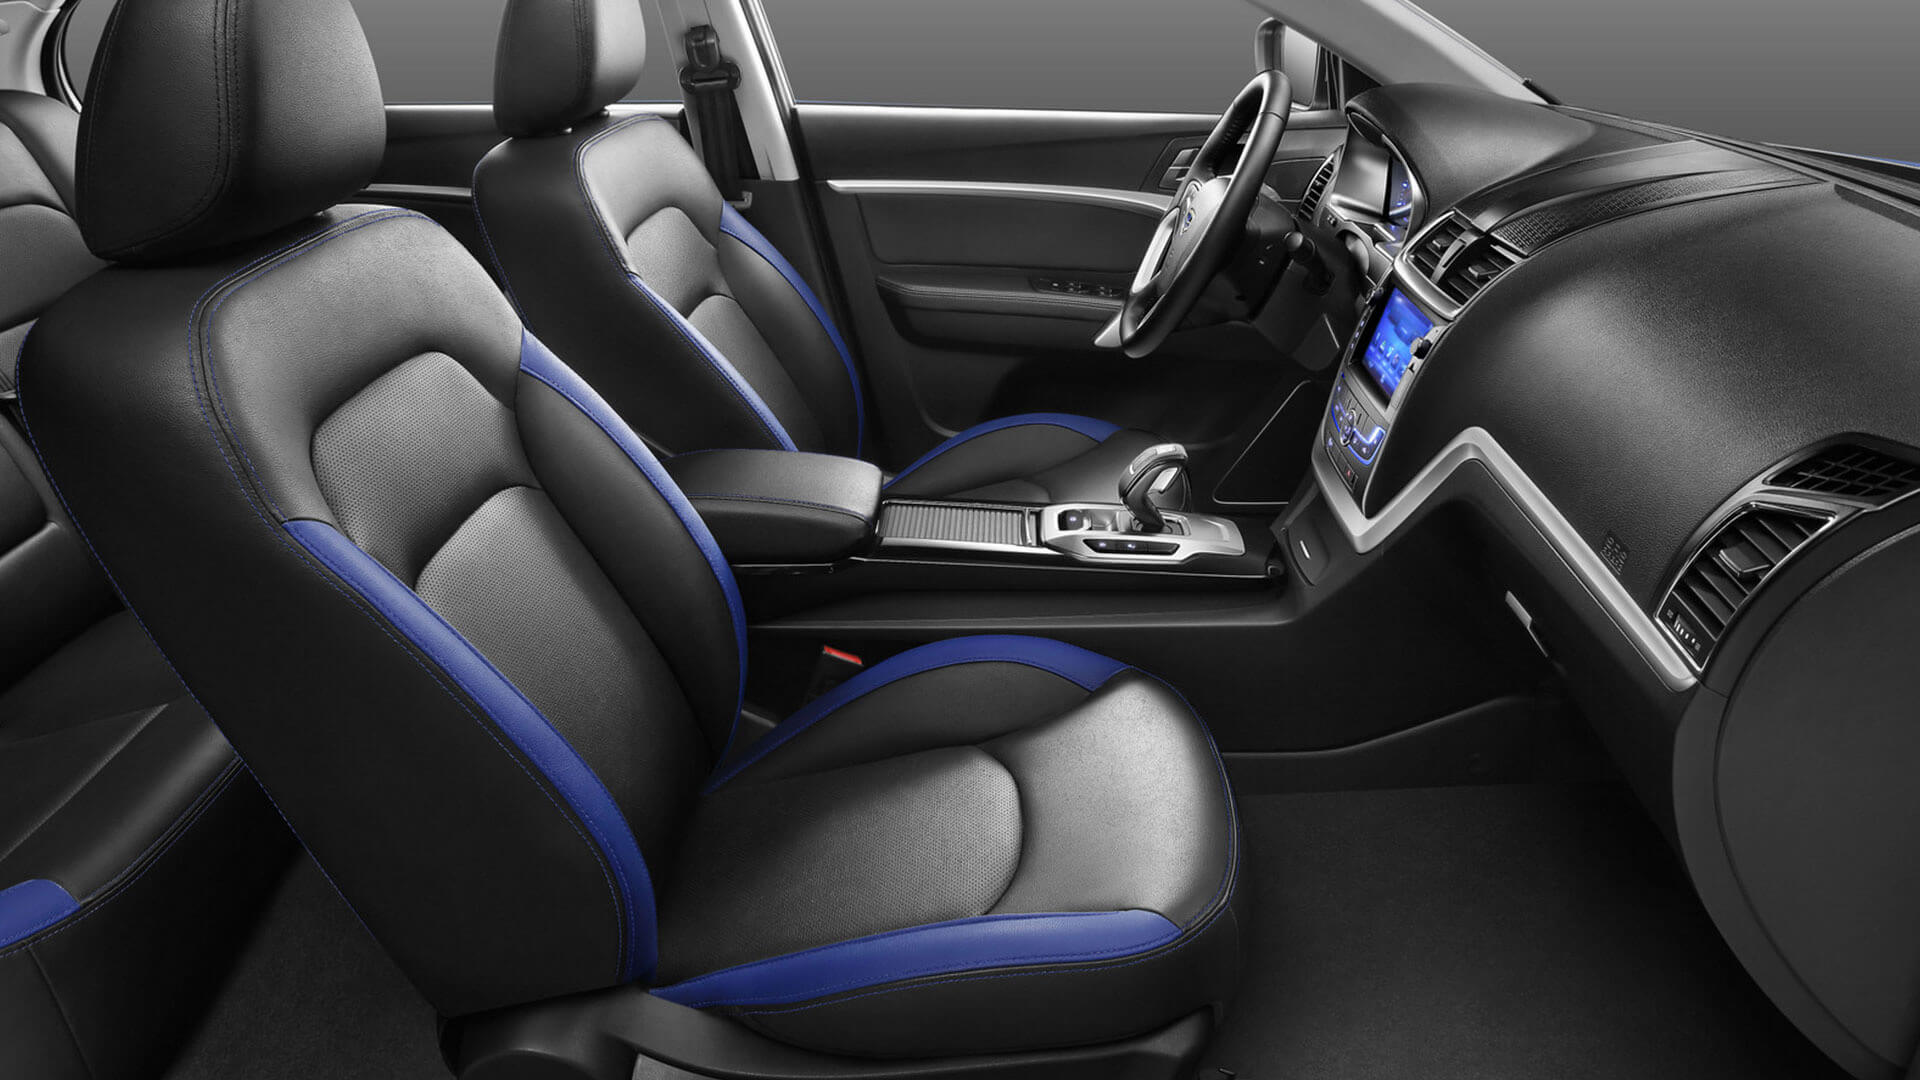 Geely Emgrand EV seats